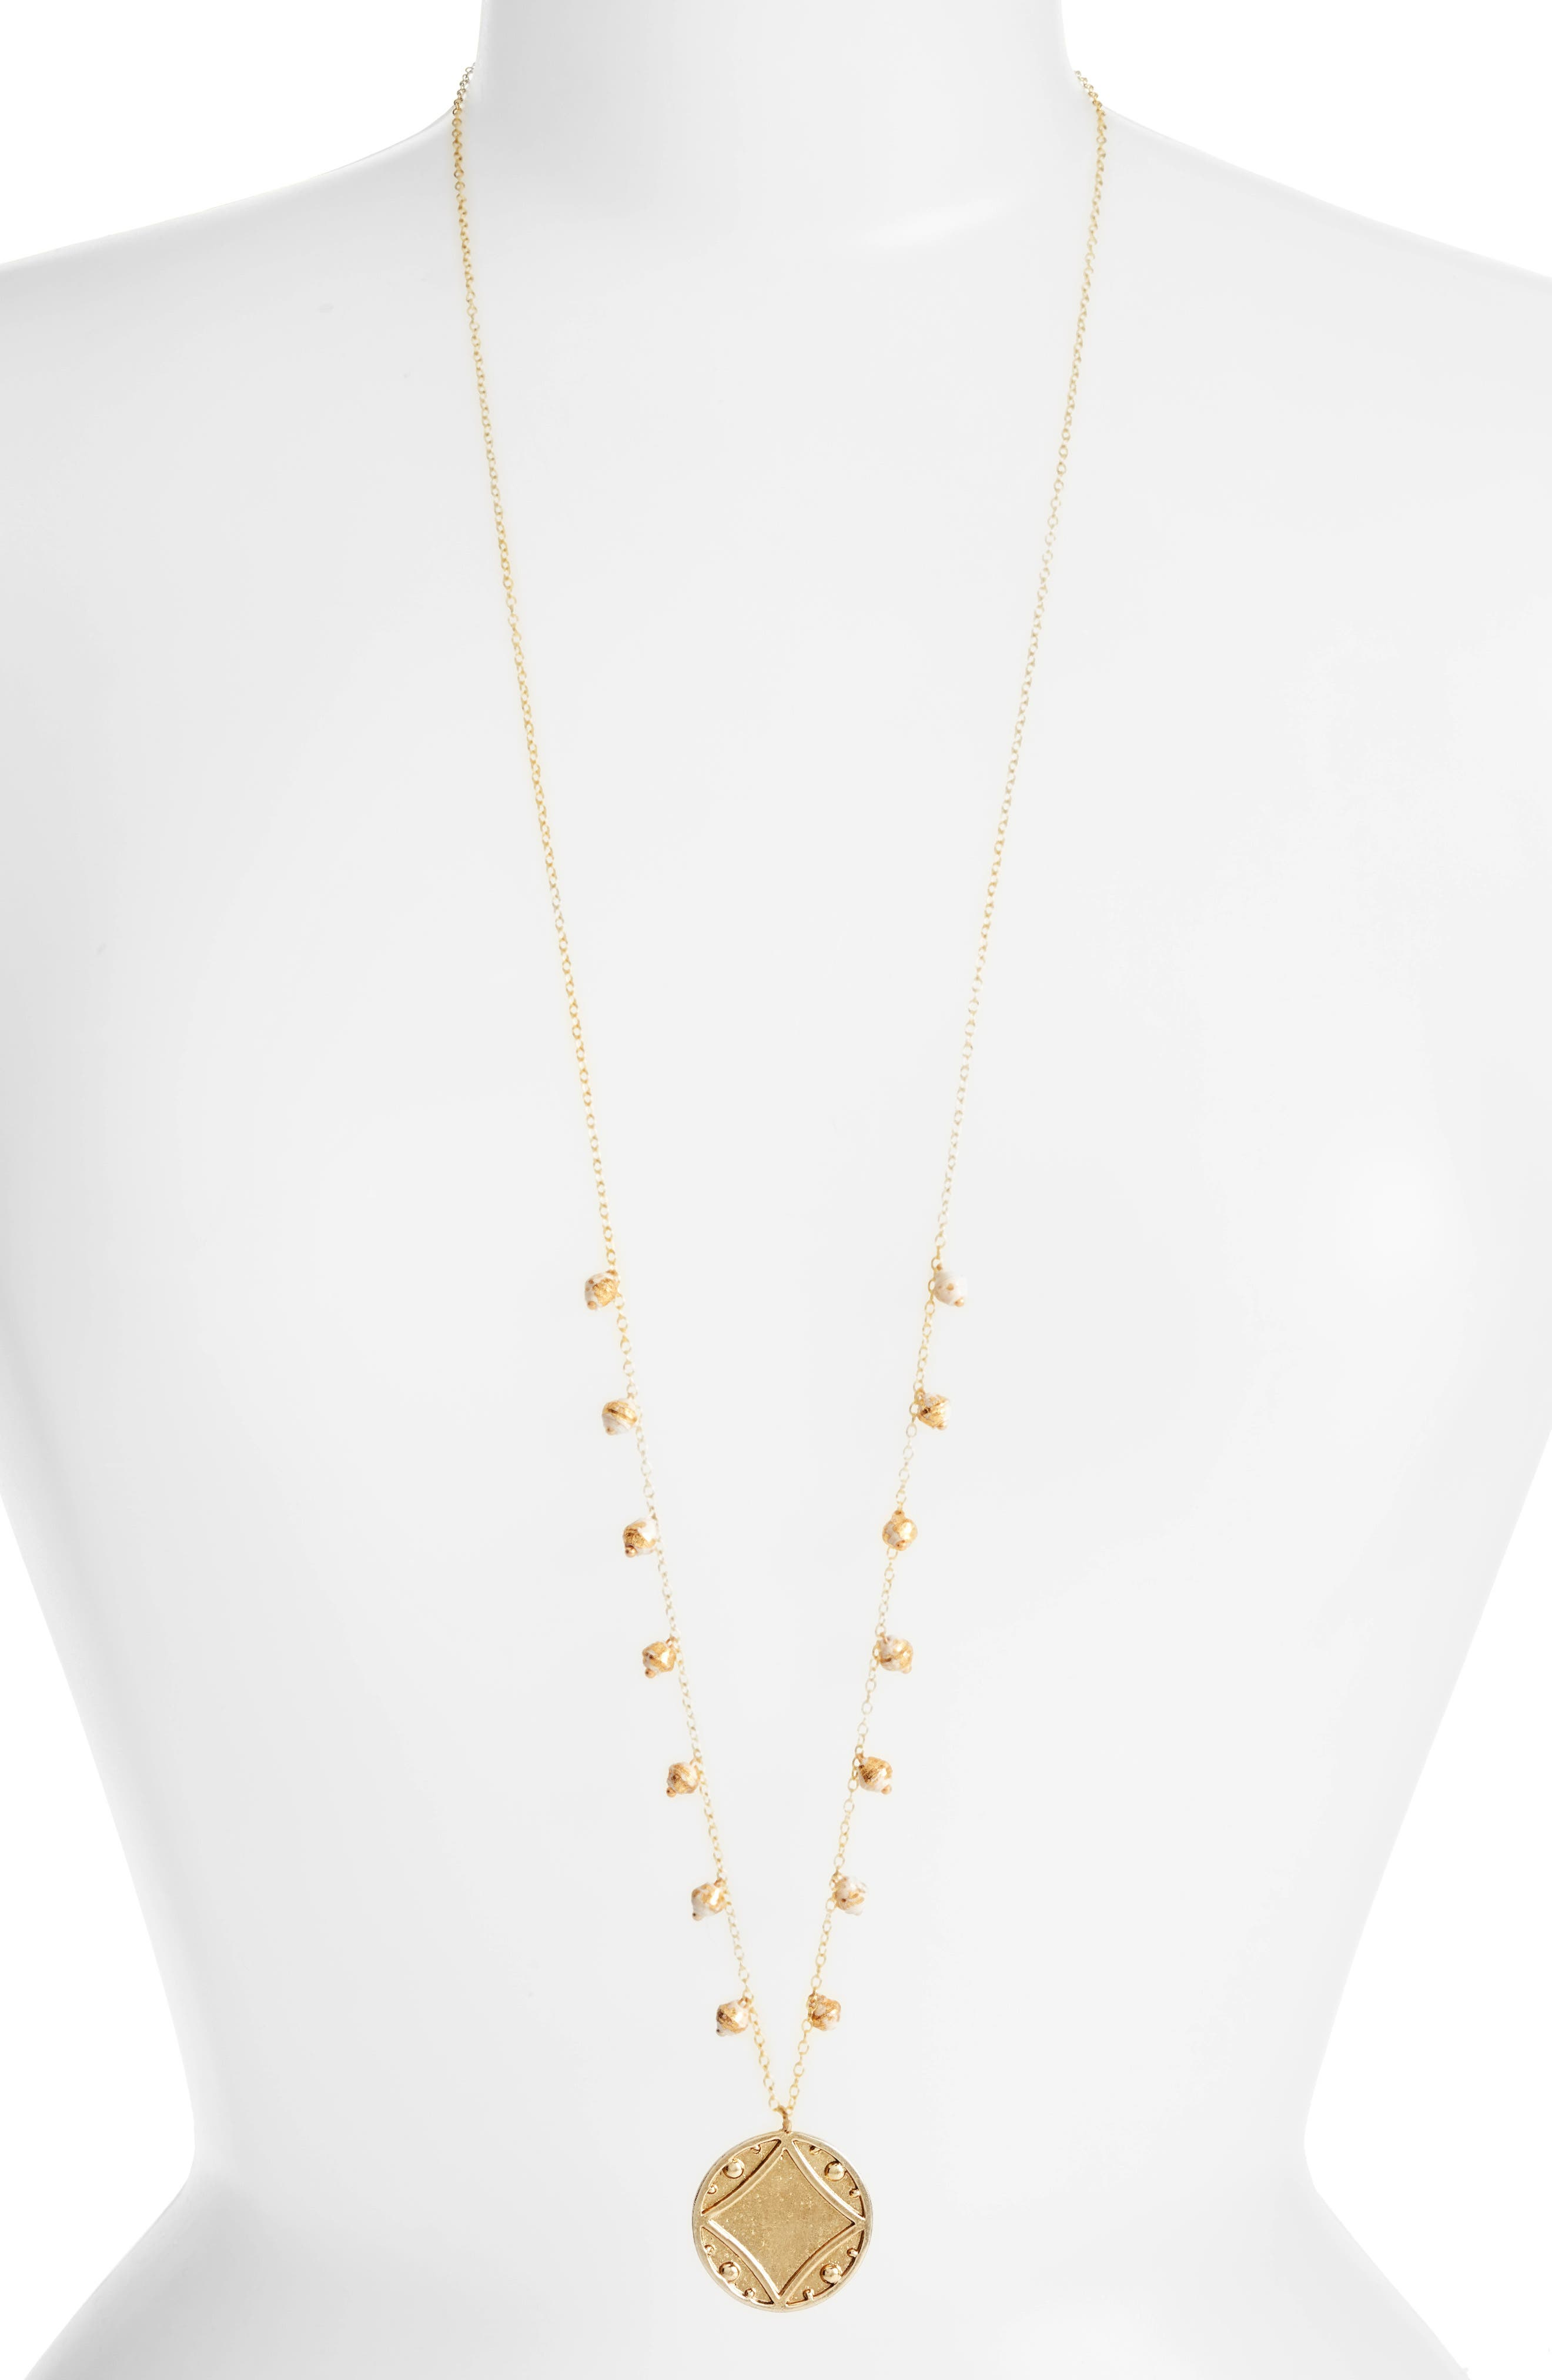 Main Image - 31 Bits Early Light Pendant Necklace